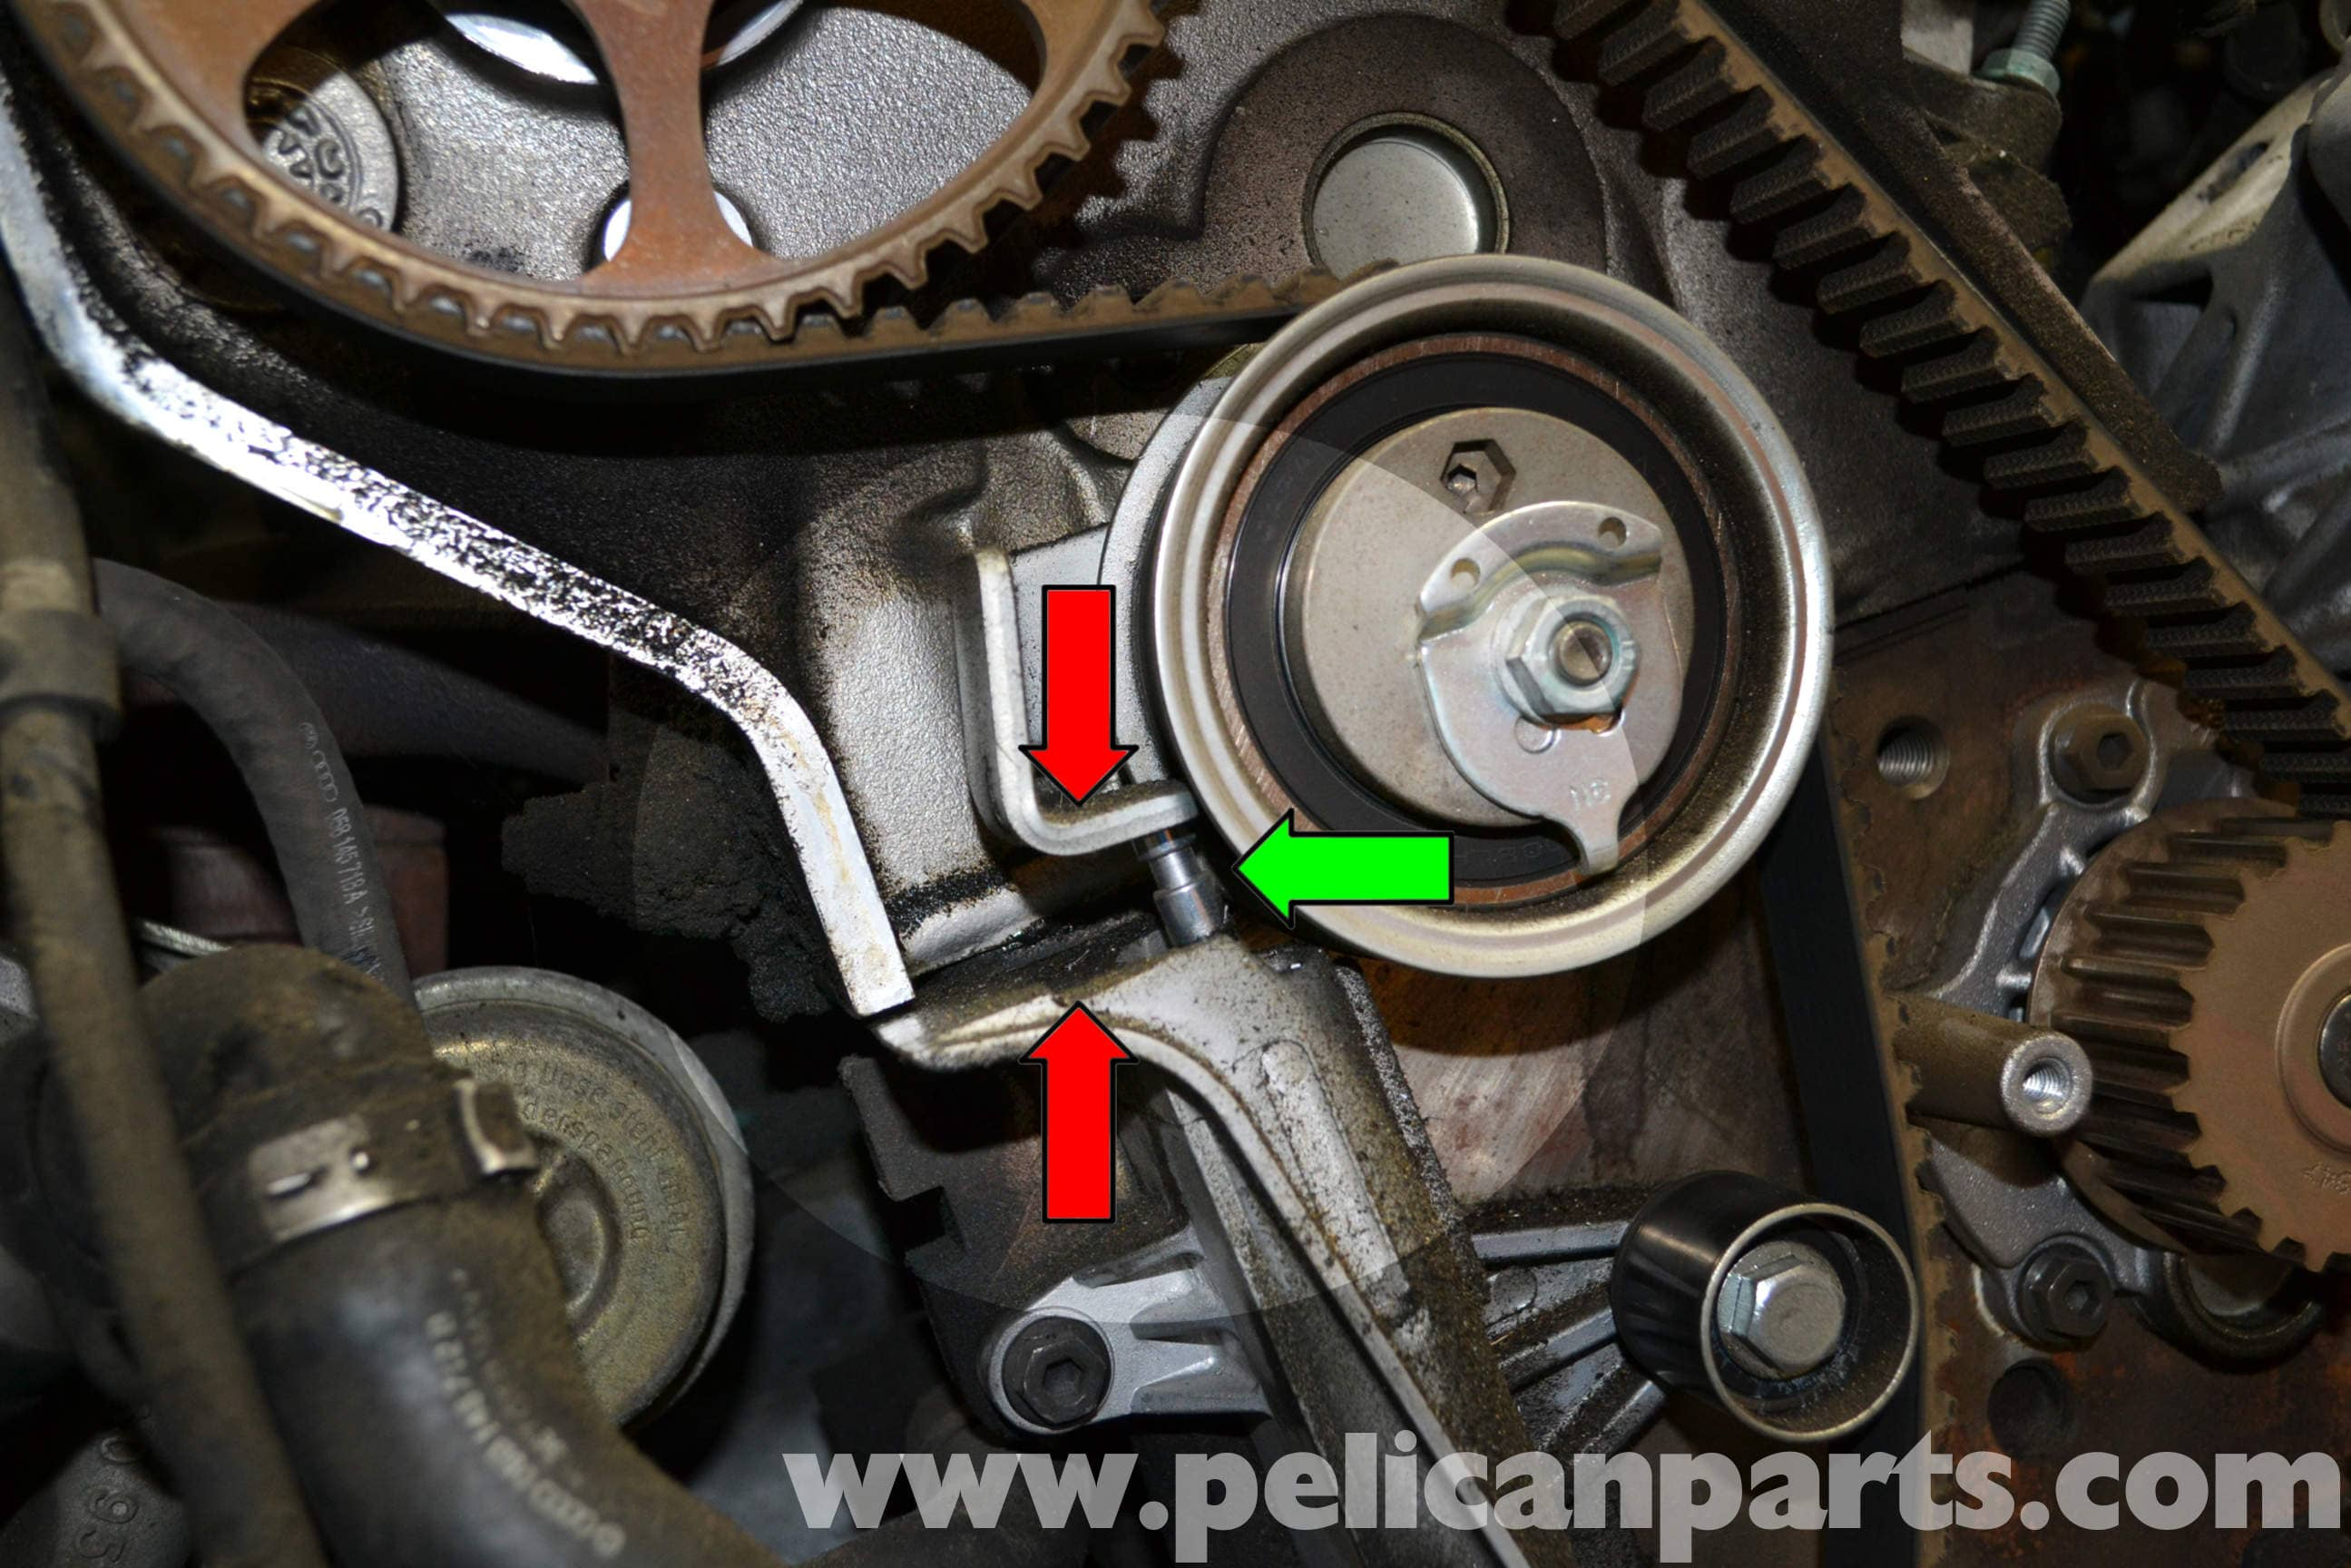 Audi A4 B6 Water Pump Replacement (1 8T 2002-2008) | Pelican Parts